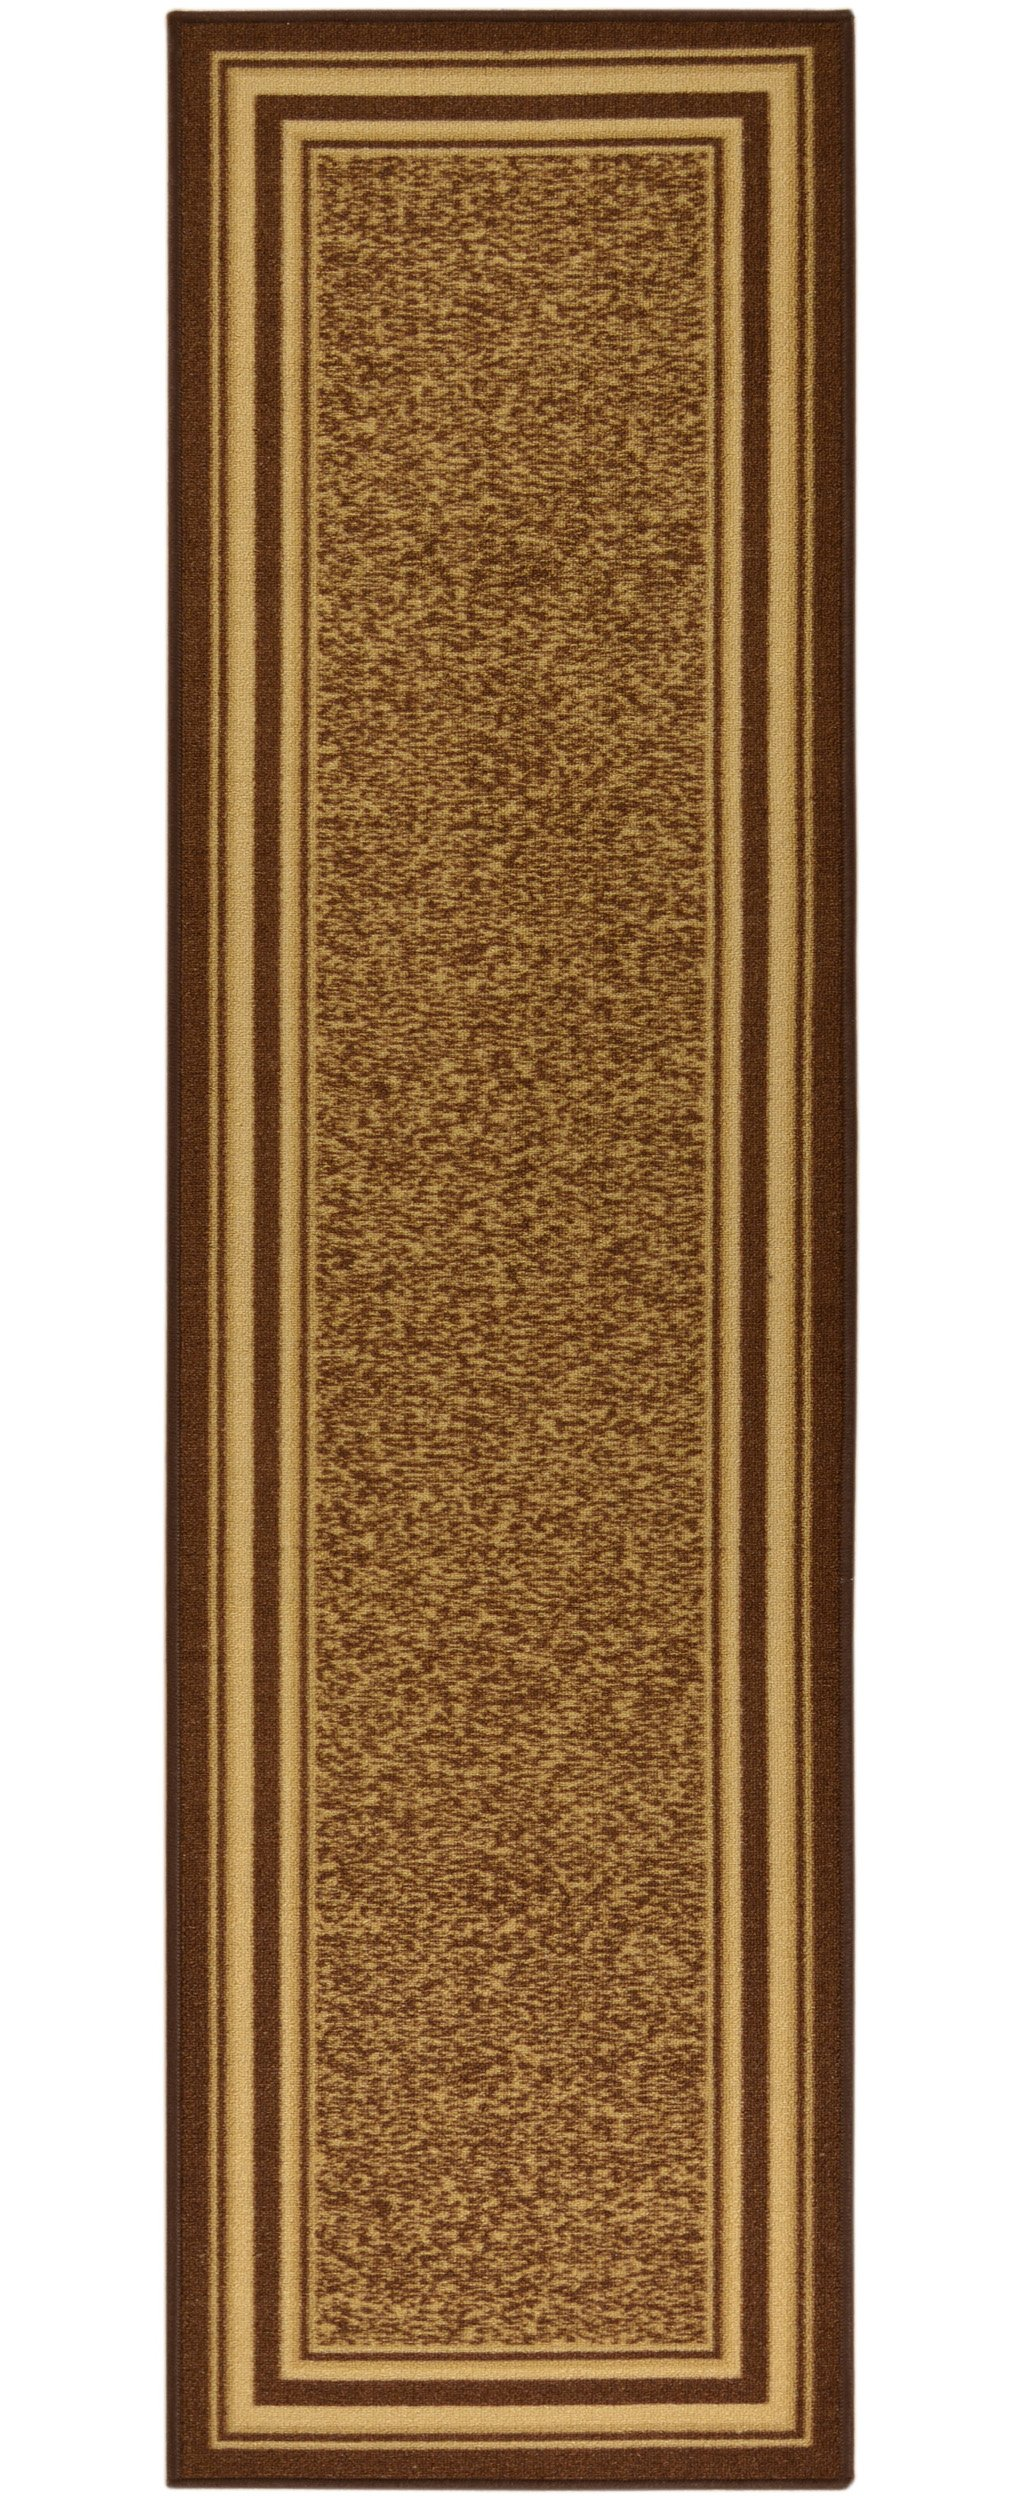 Ottomanson Ottohome Collection Contemporary Bordered Design Non-Skid Rubber Backing Runner Rug, 2'0'' X 7'0'', Brown by Ottomanson (Image #1)